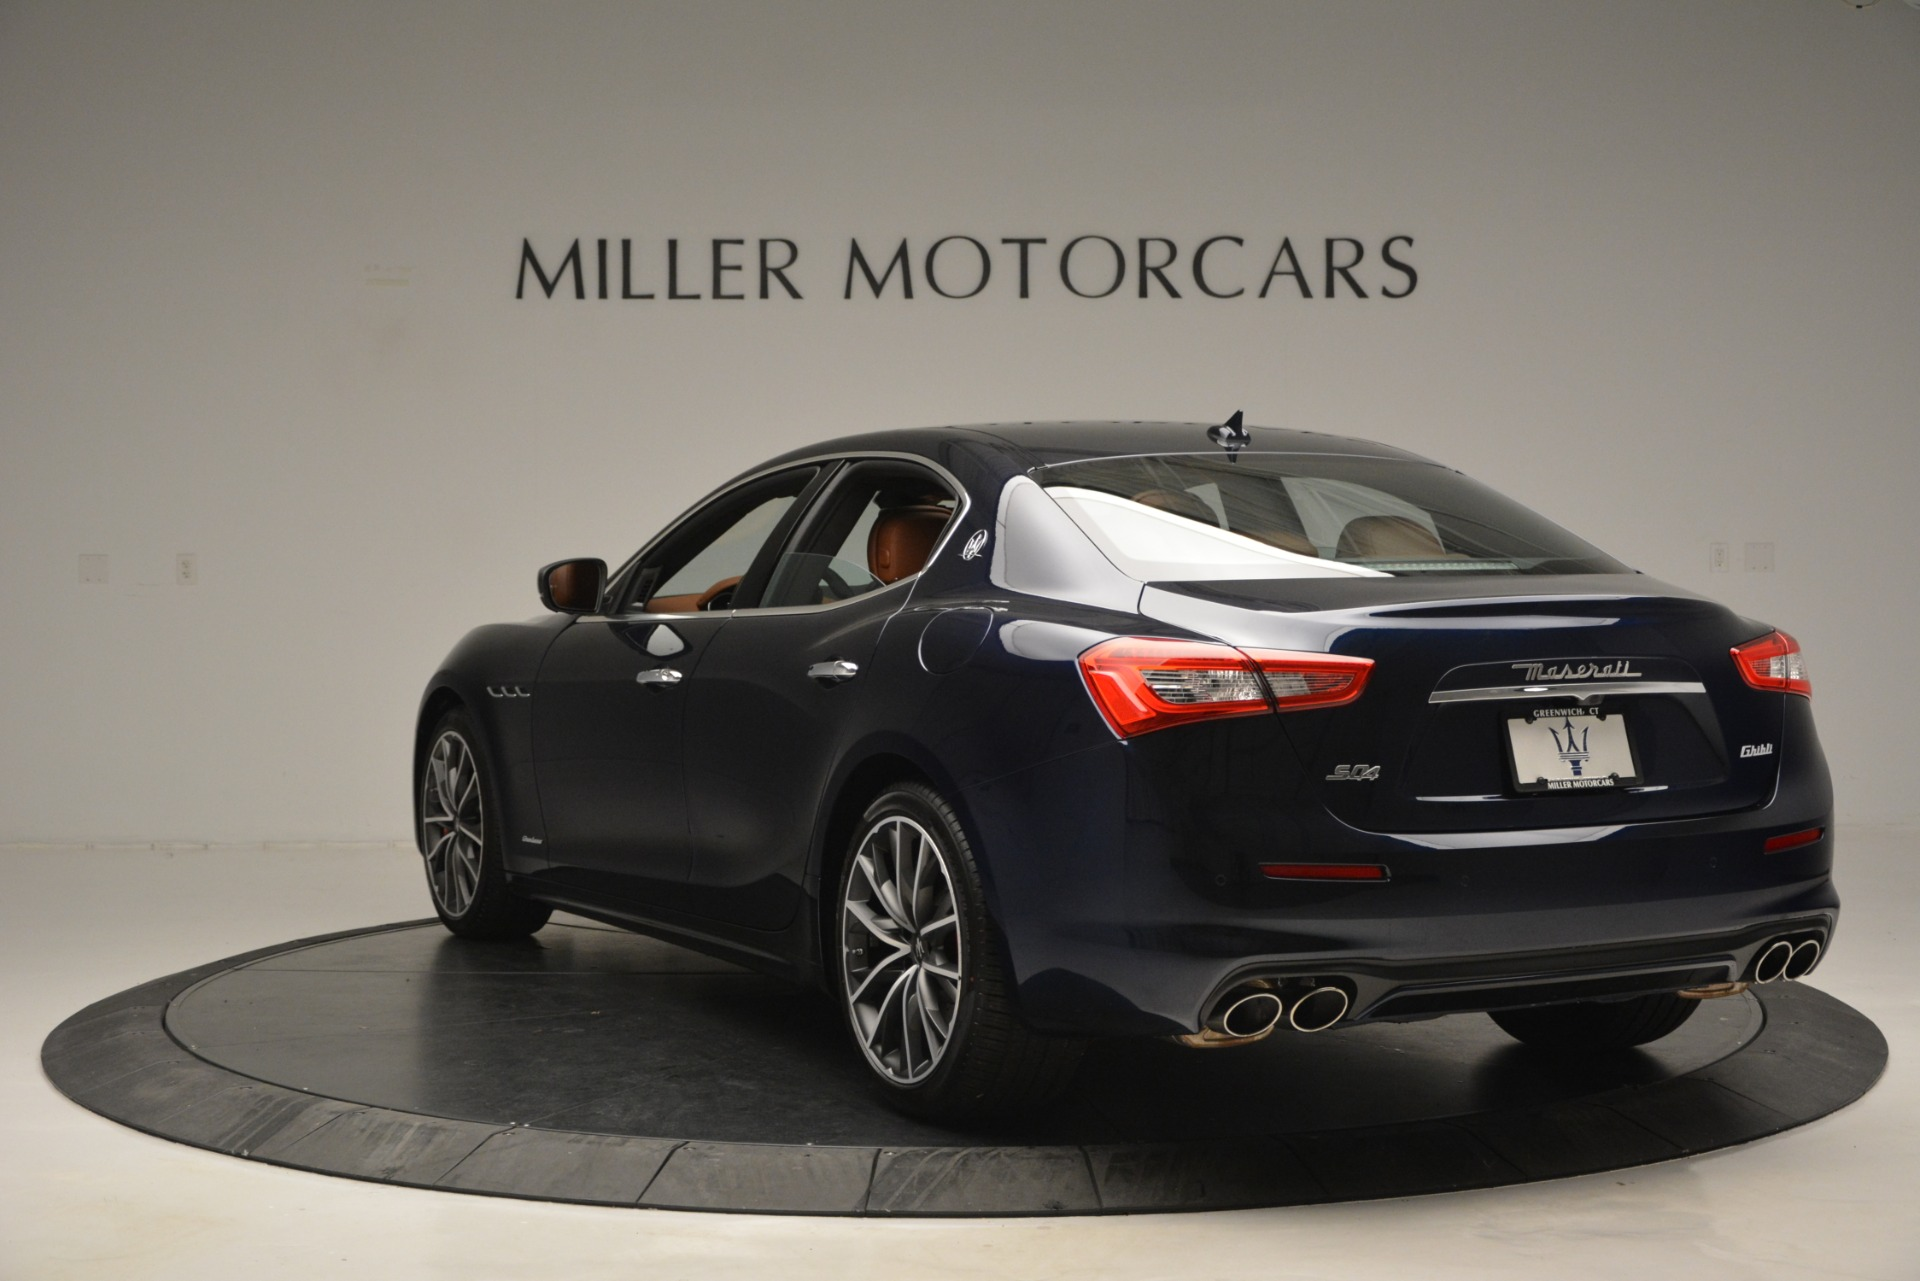 New 2019 Maserati Ghibli S Q4 GranLusso For Sale In Greenwich, CT 2882_p7